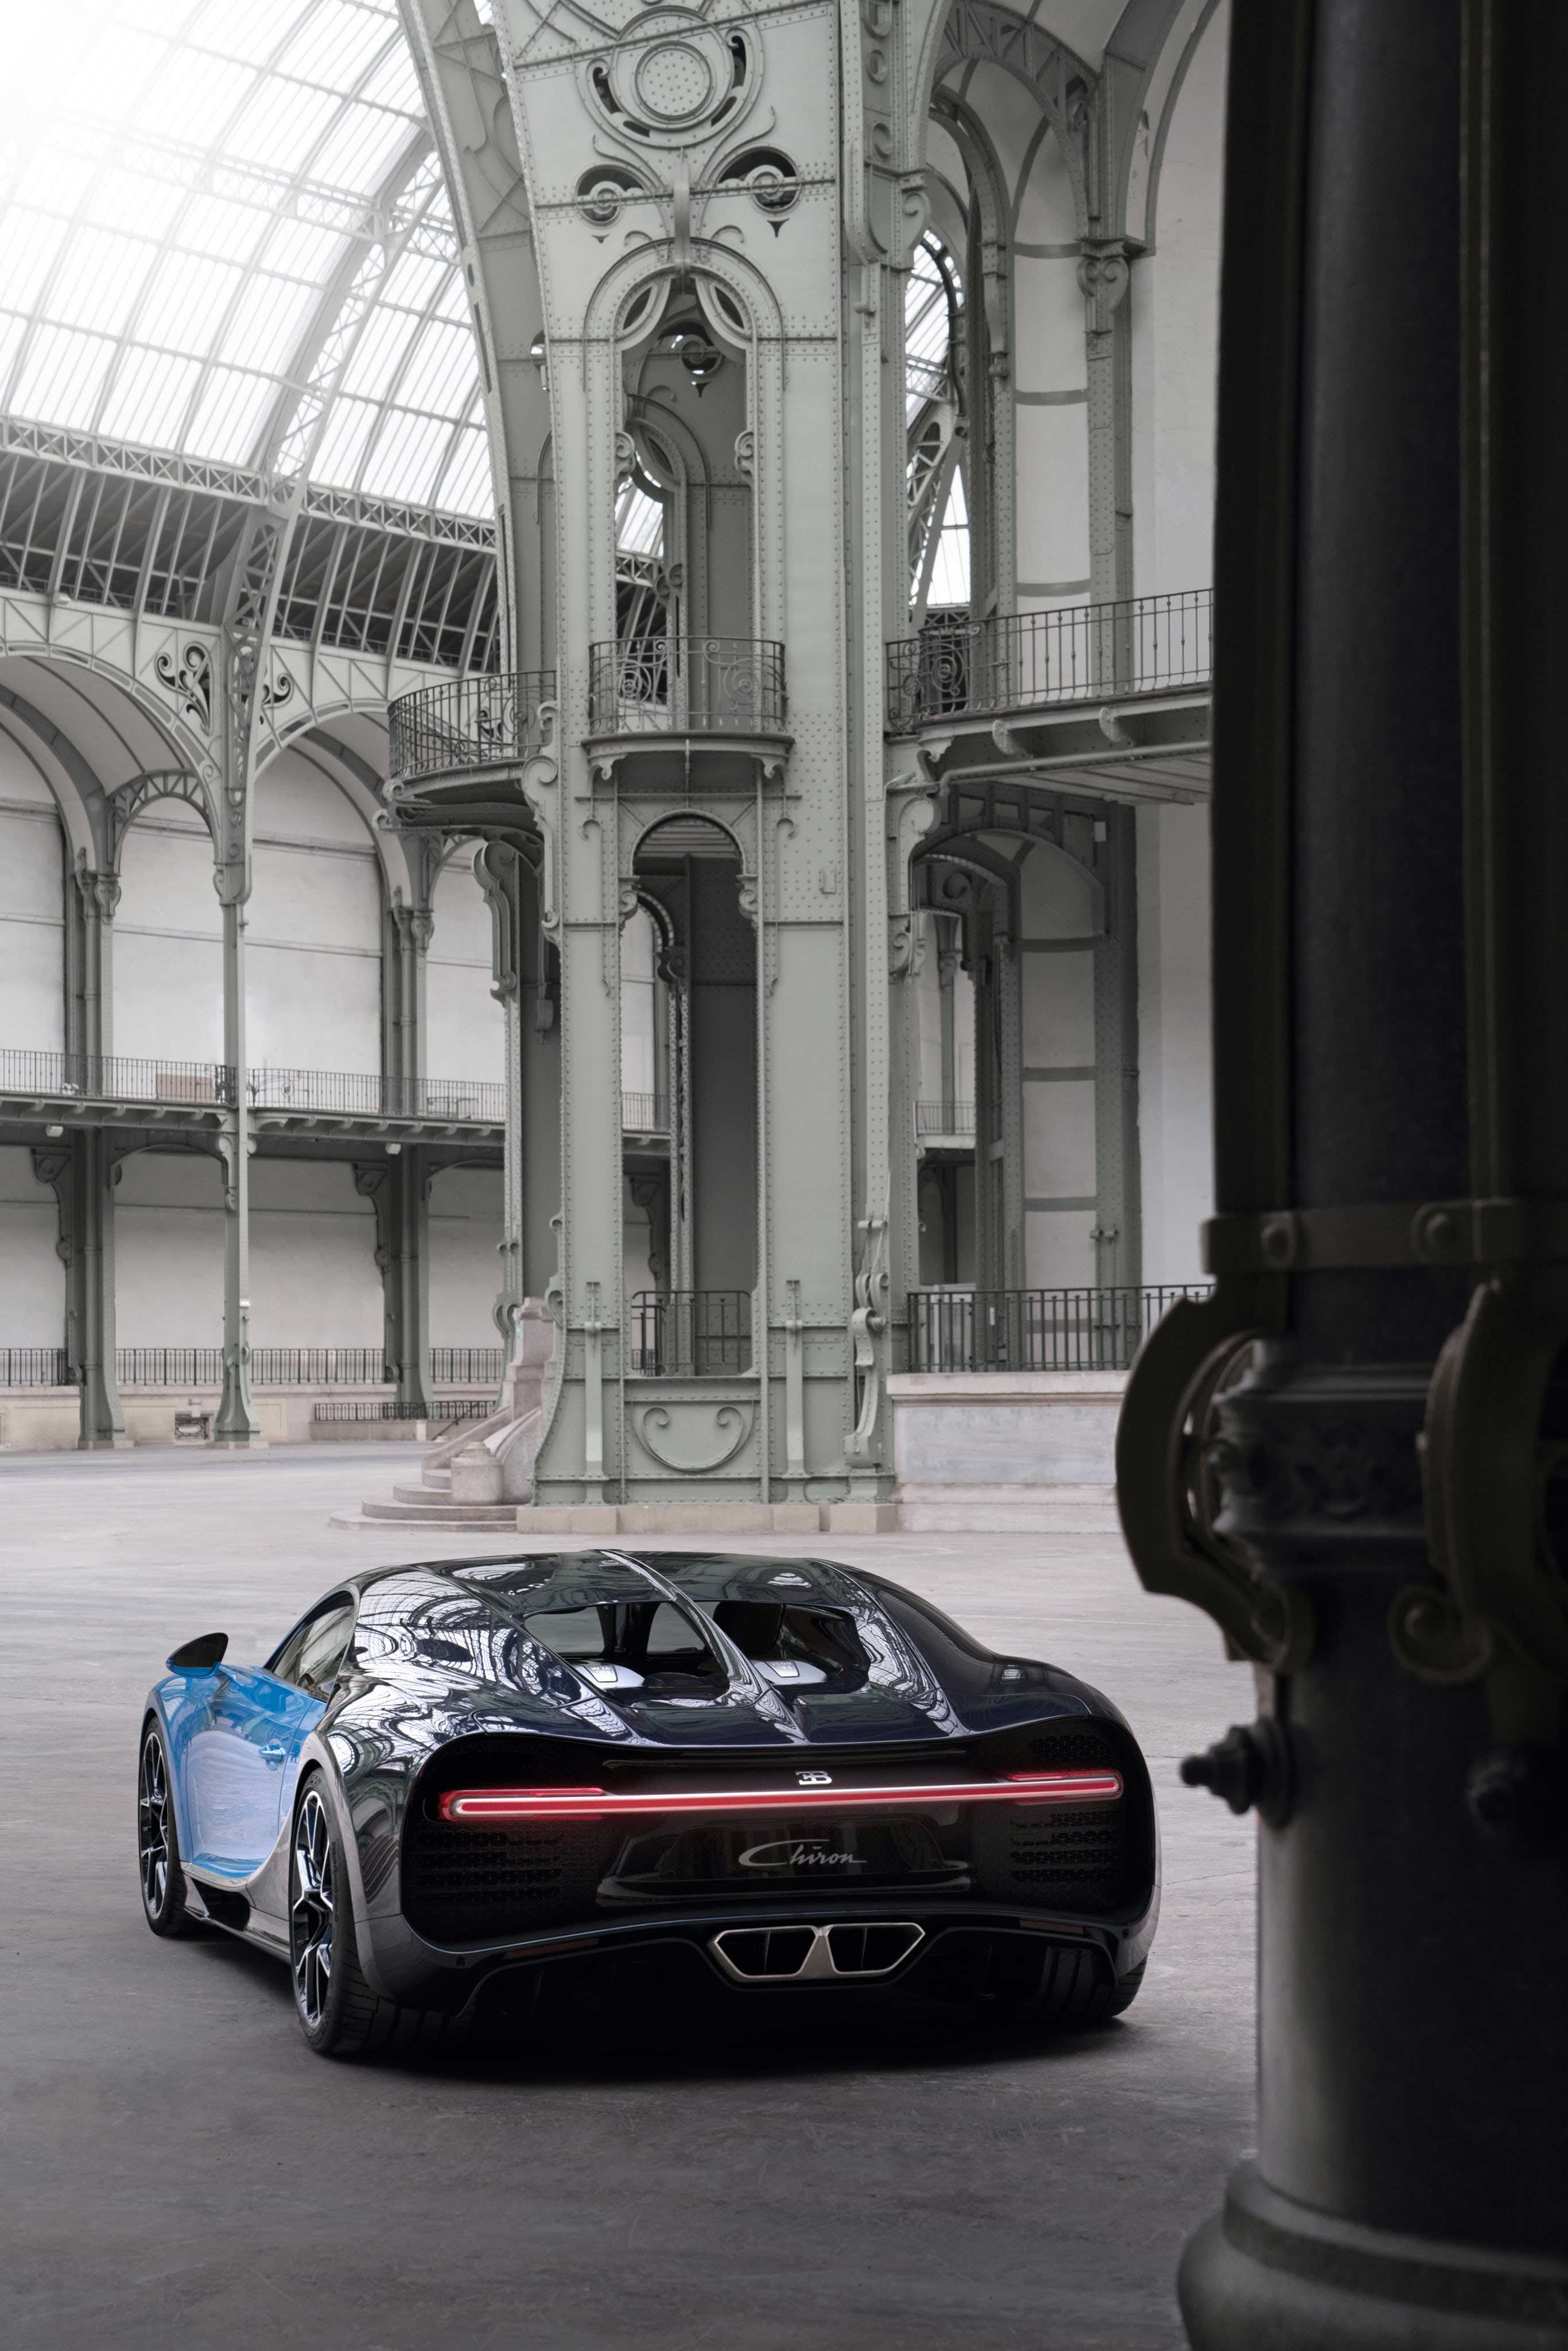 Bugatti Iphone Wallpaper Posted By Samantha Sellers